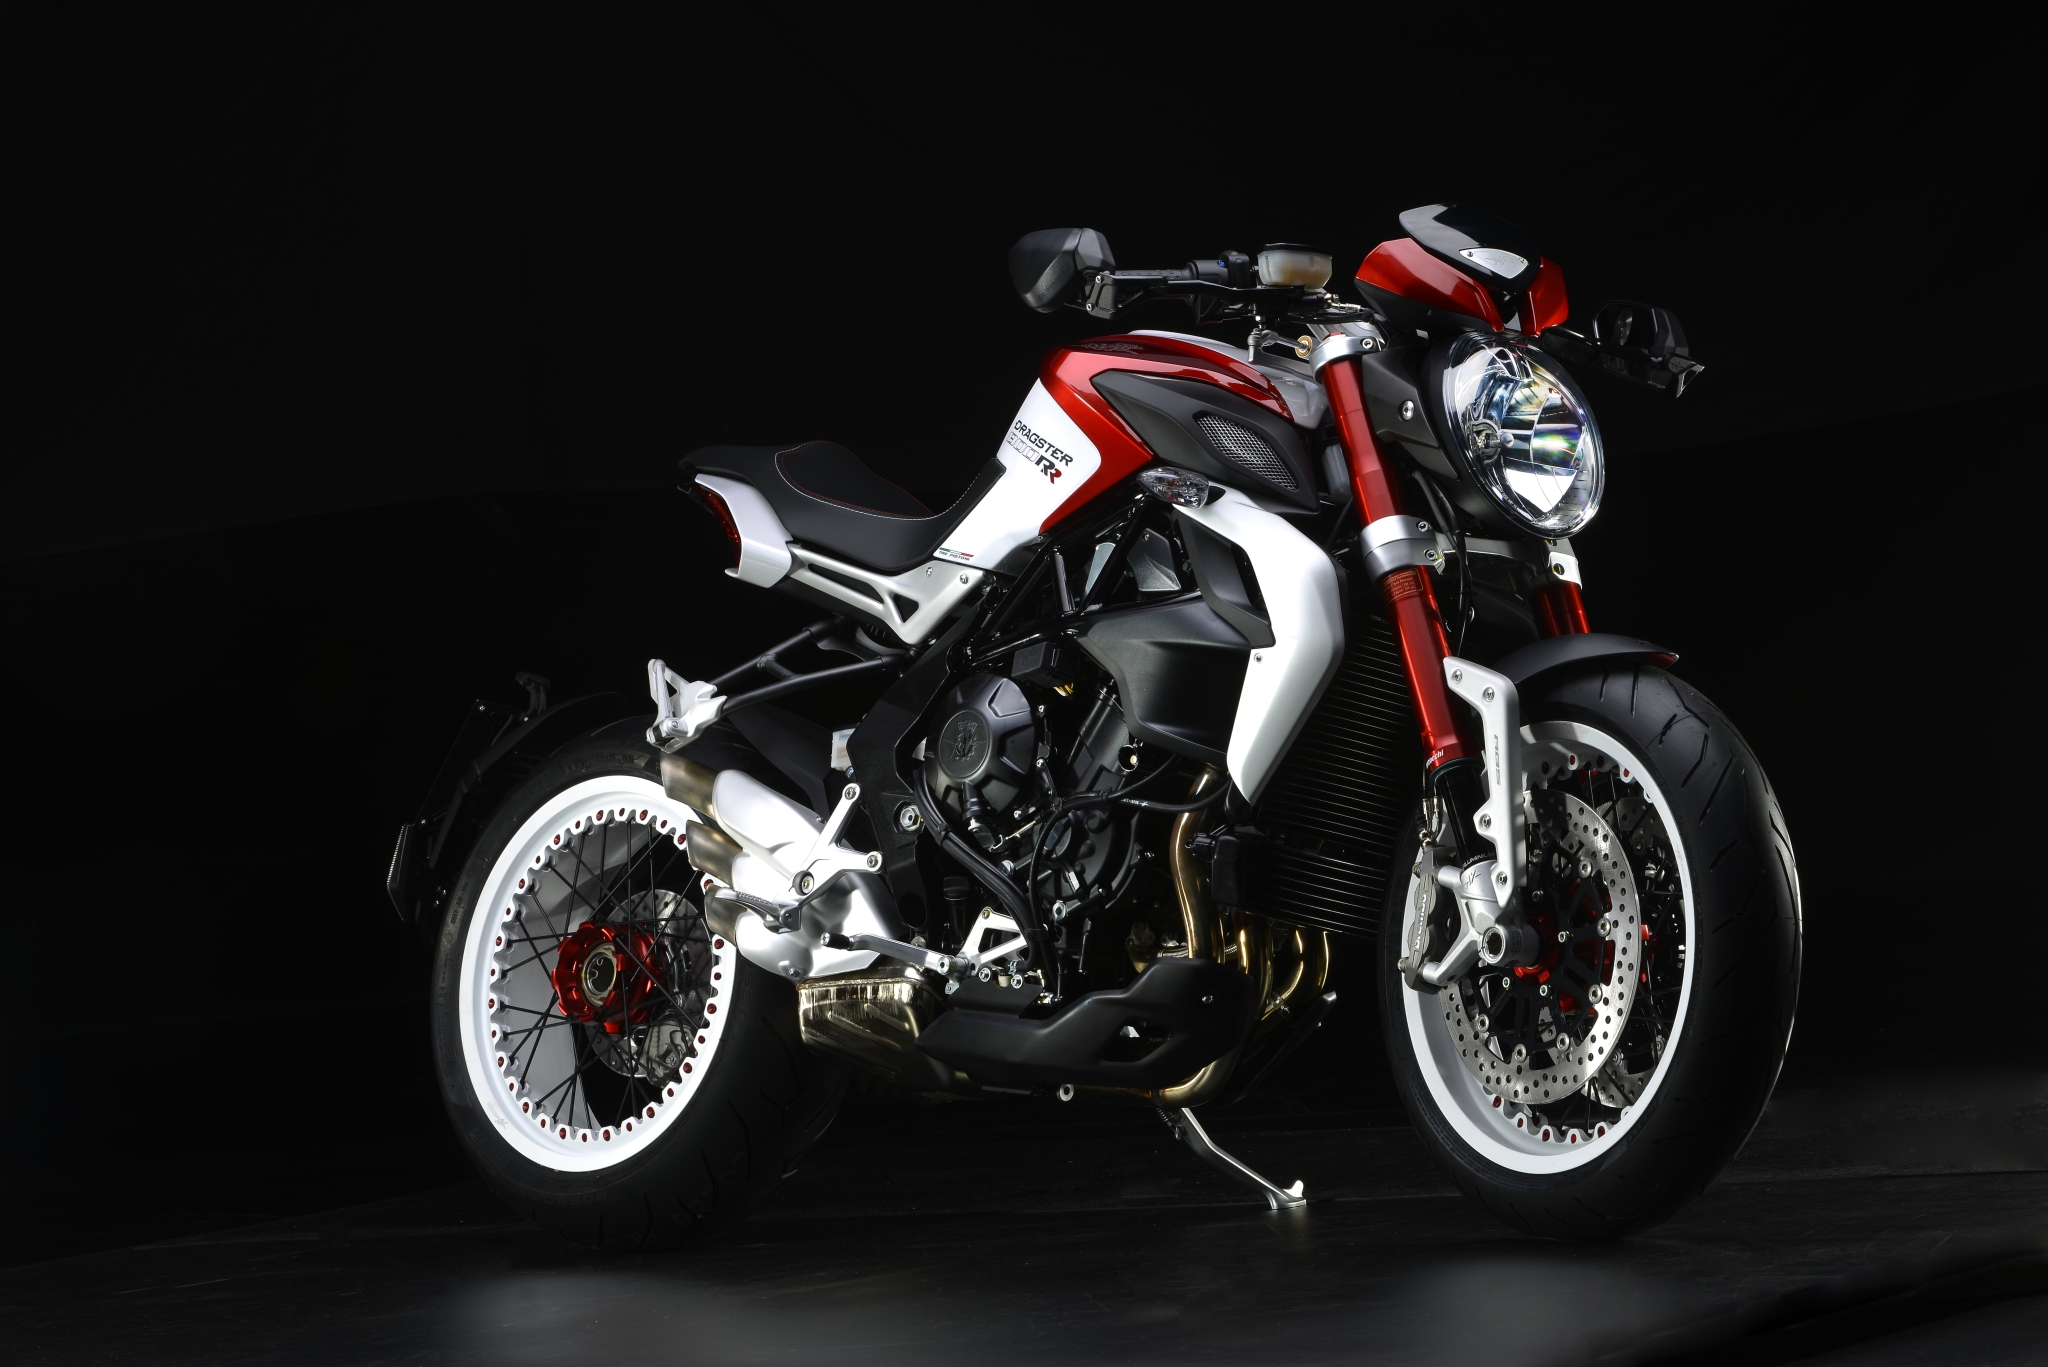 Kawasaki Near Me >> 2015 MV Agusta Brutale Dragster 800 RR, the 140 HP Naked Beauty - autoevolution